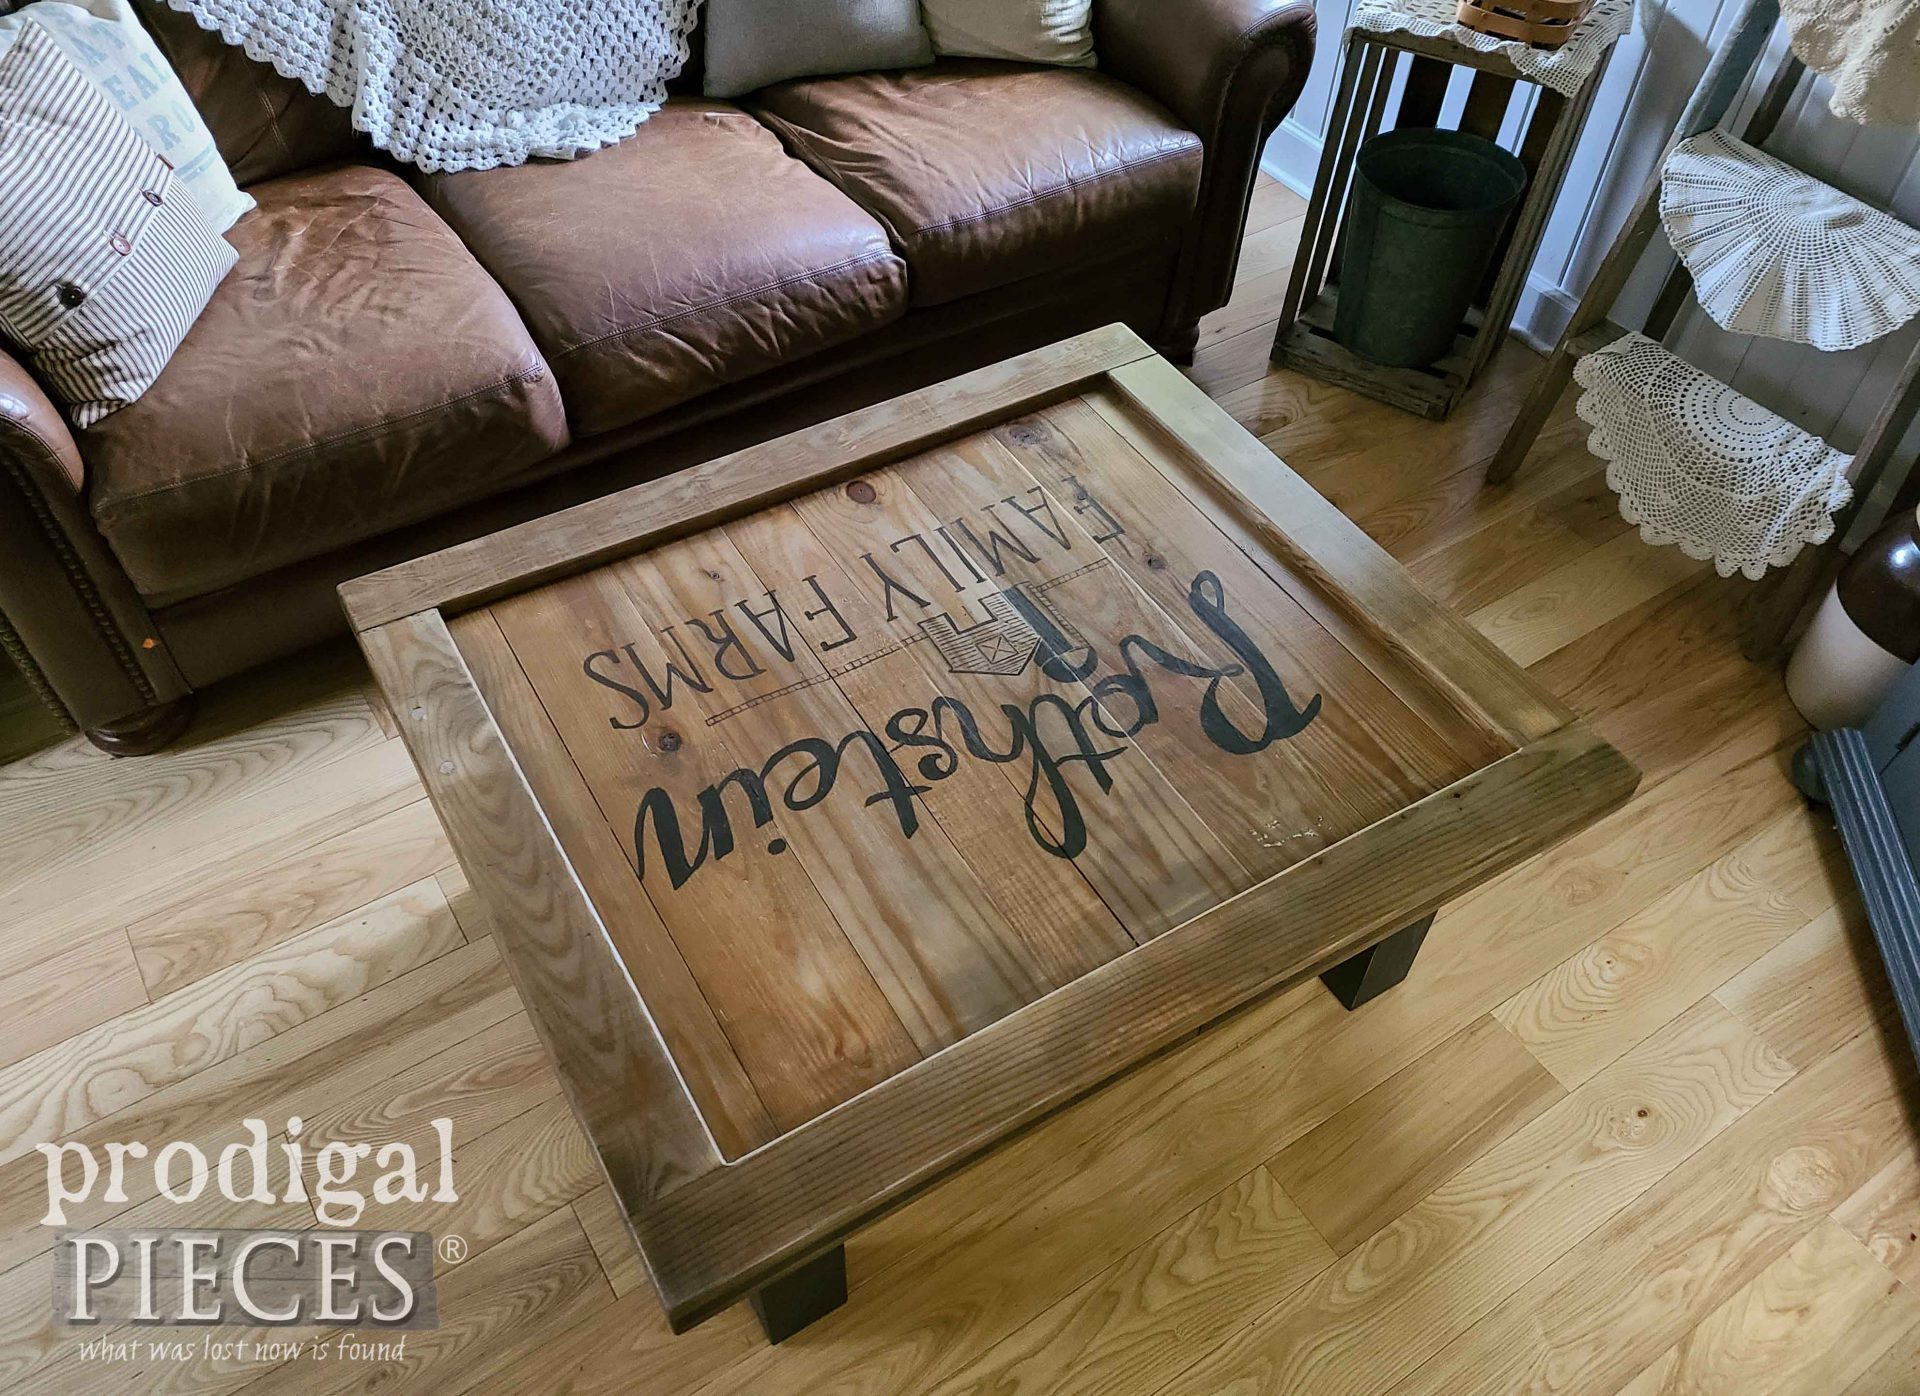 Rustic Farmhouse Coffee Table with Typography by Larissa of Prodigal Pieces   prodigalpieces.com #prodigalpieces #furniture #farmhouse #home #homedecor